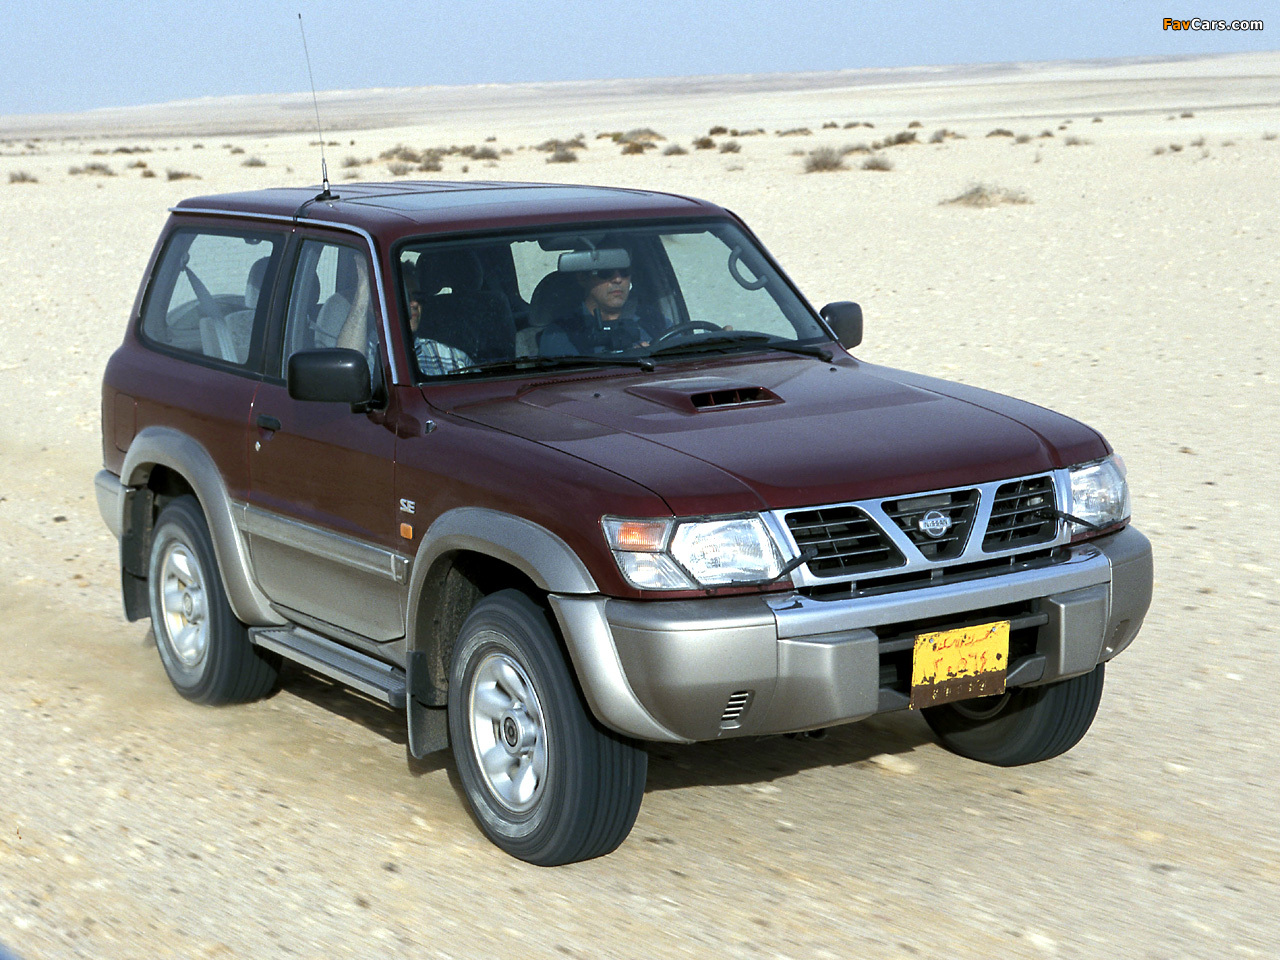 2004 nissan patrol gr ii y61 pictures information and specs auto. Black Bedroom Furniture Sets. Home Design Ideas